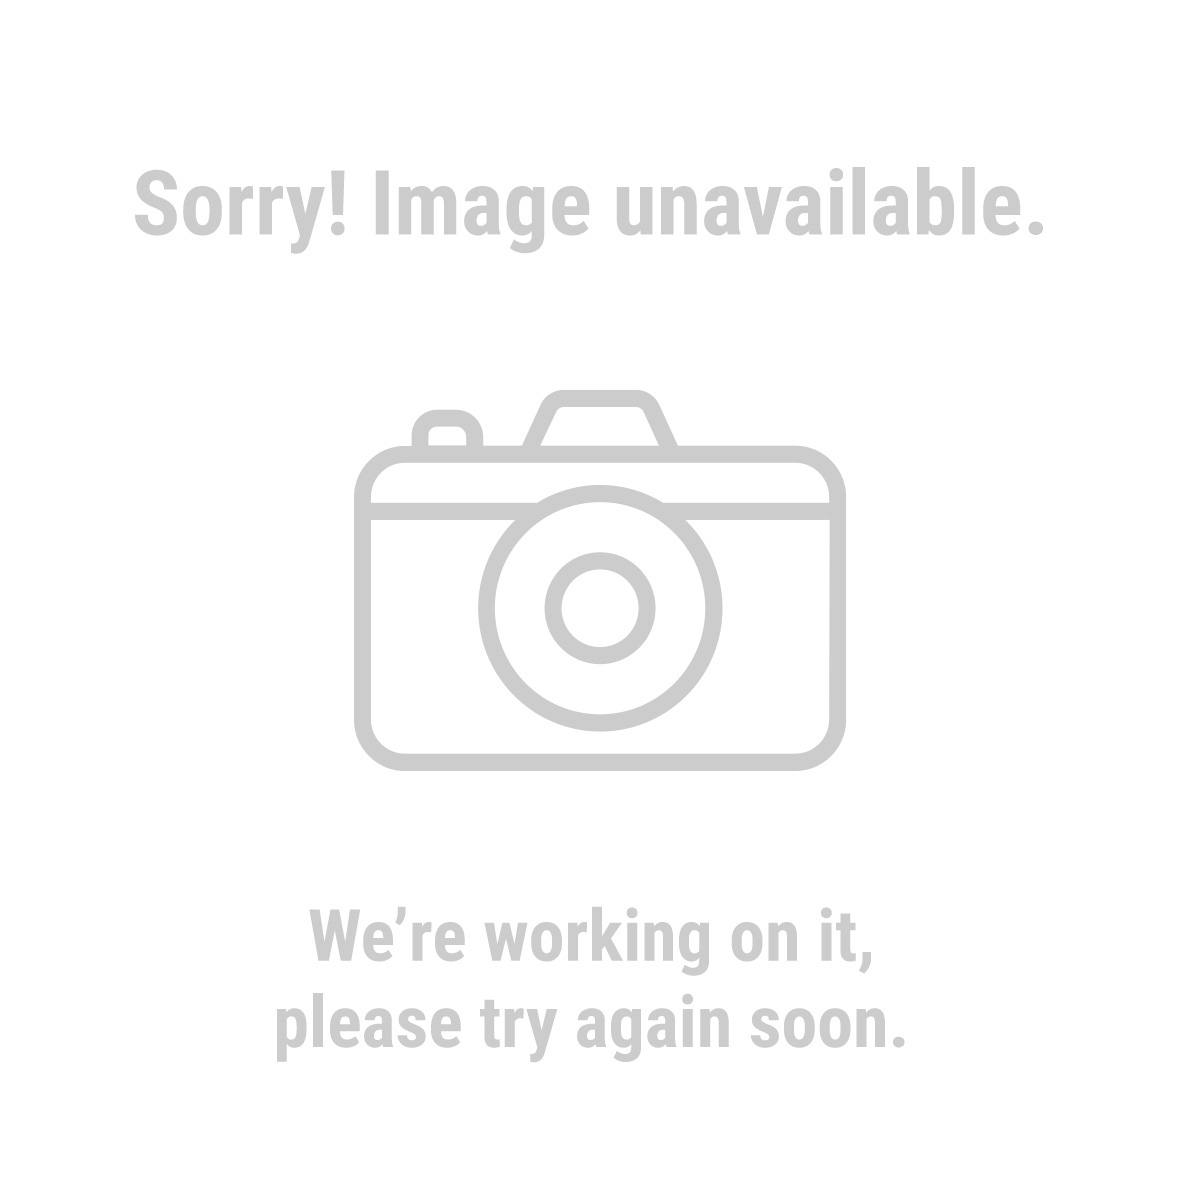 Central Pneumatic® 61694 16/18 Gauge 3-in-1 Air Nailer/Stapler